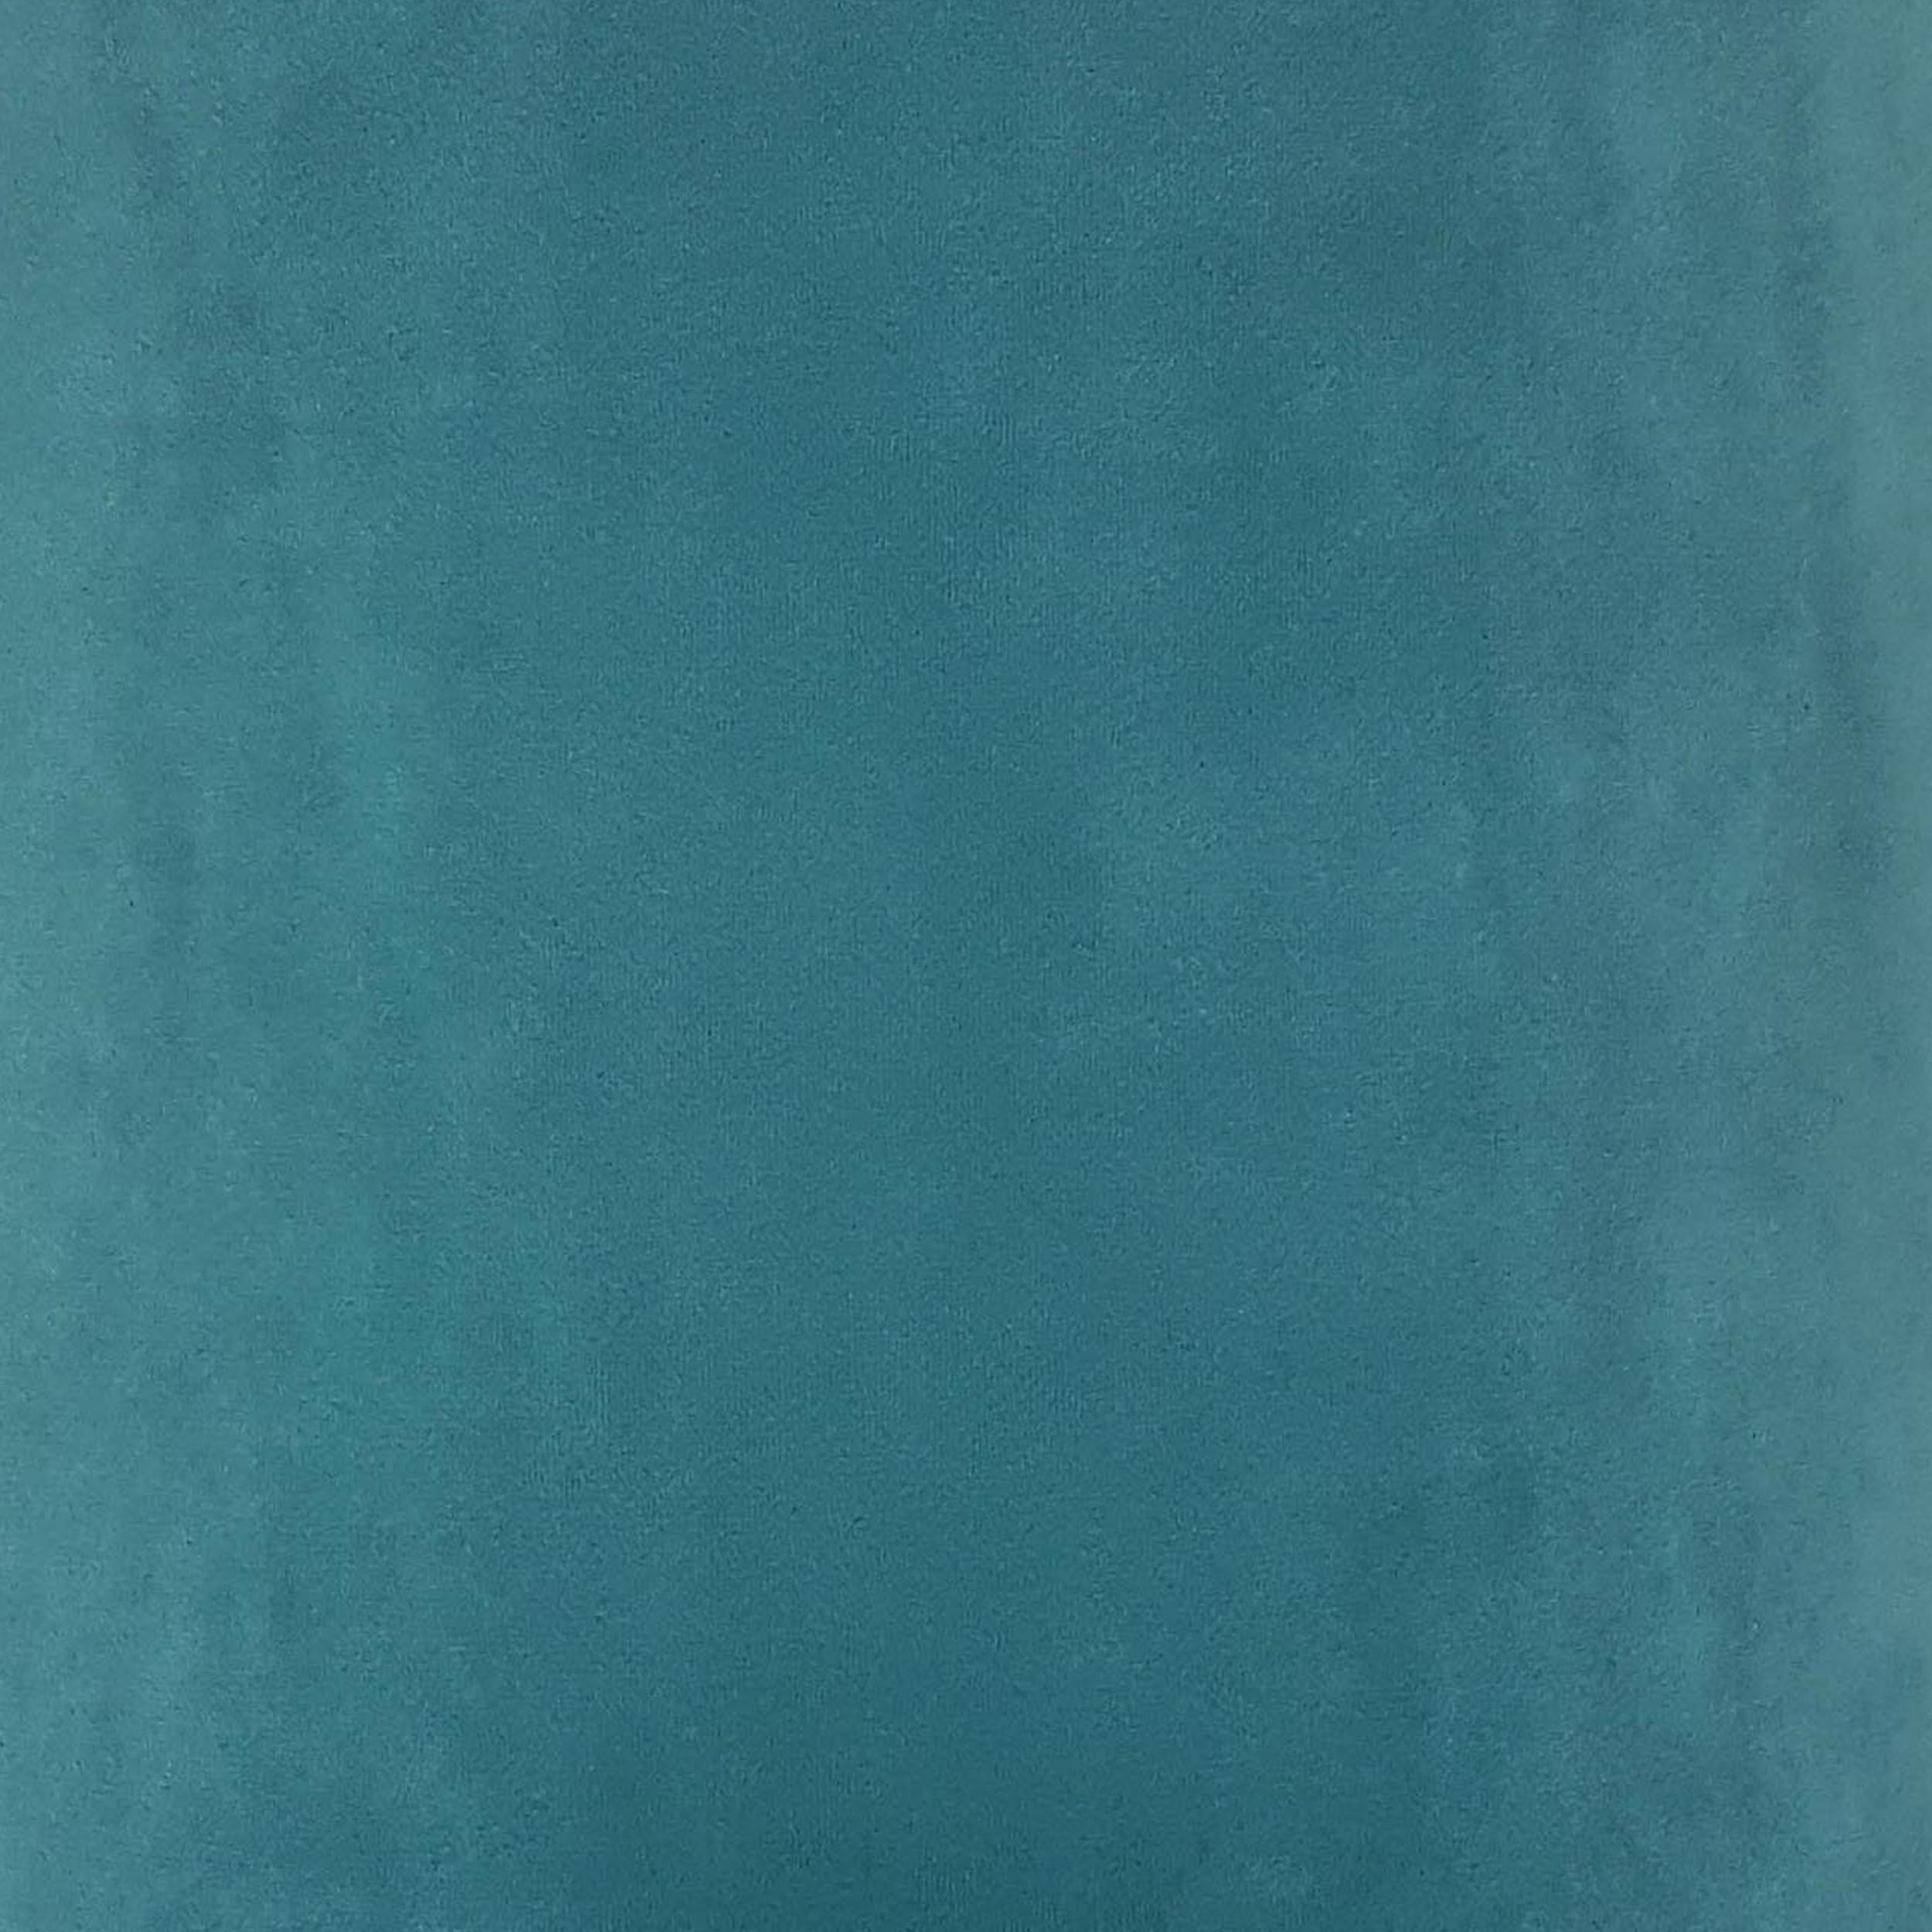 Teal Velvet Fabric to Purchase by the Metre